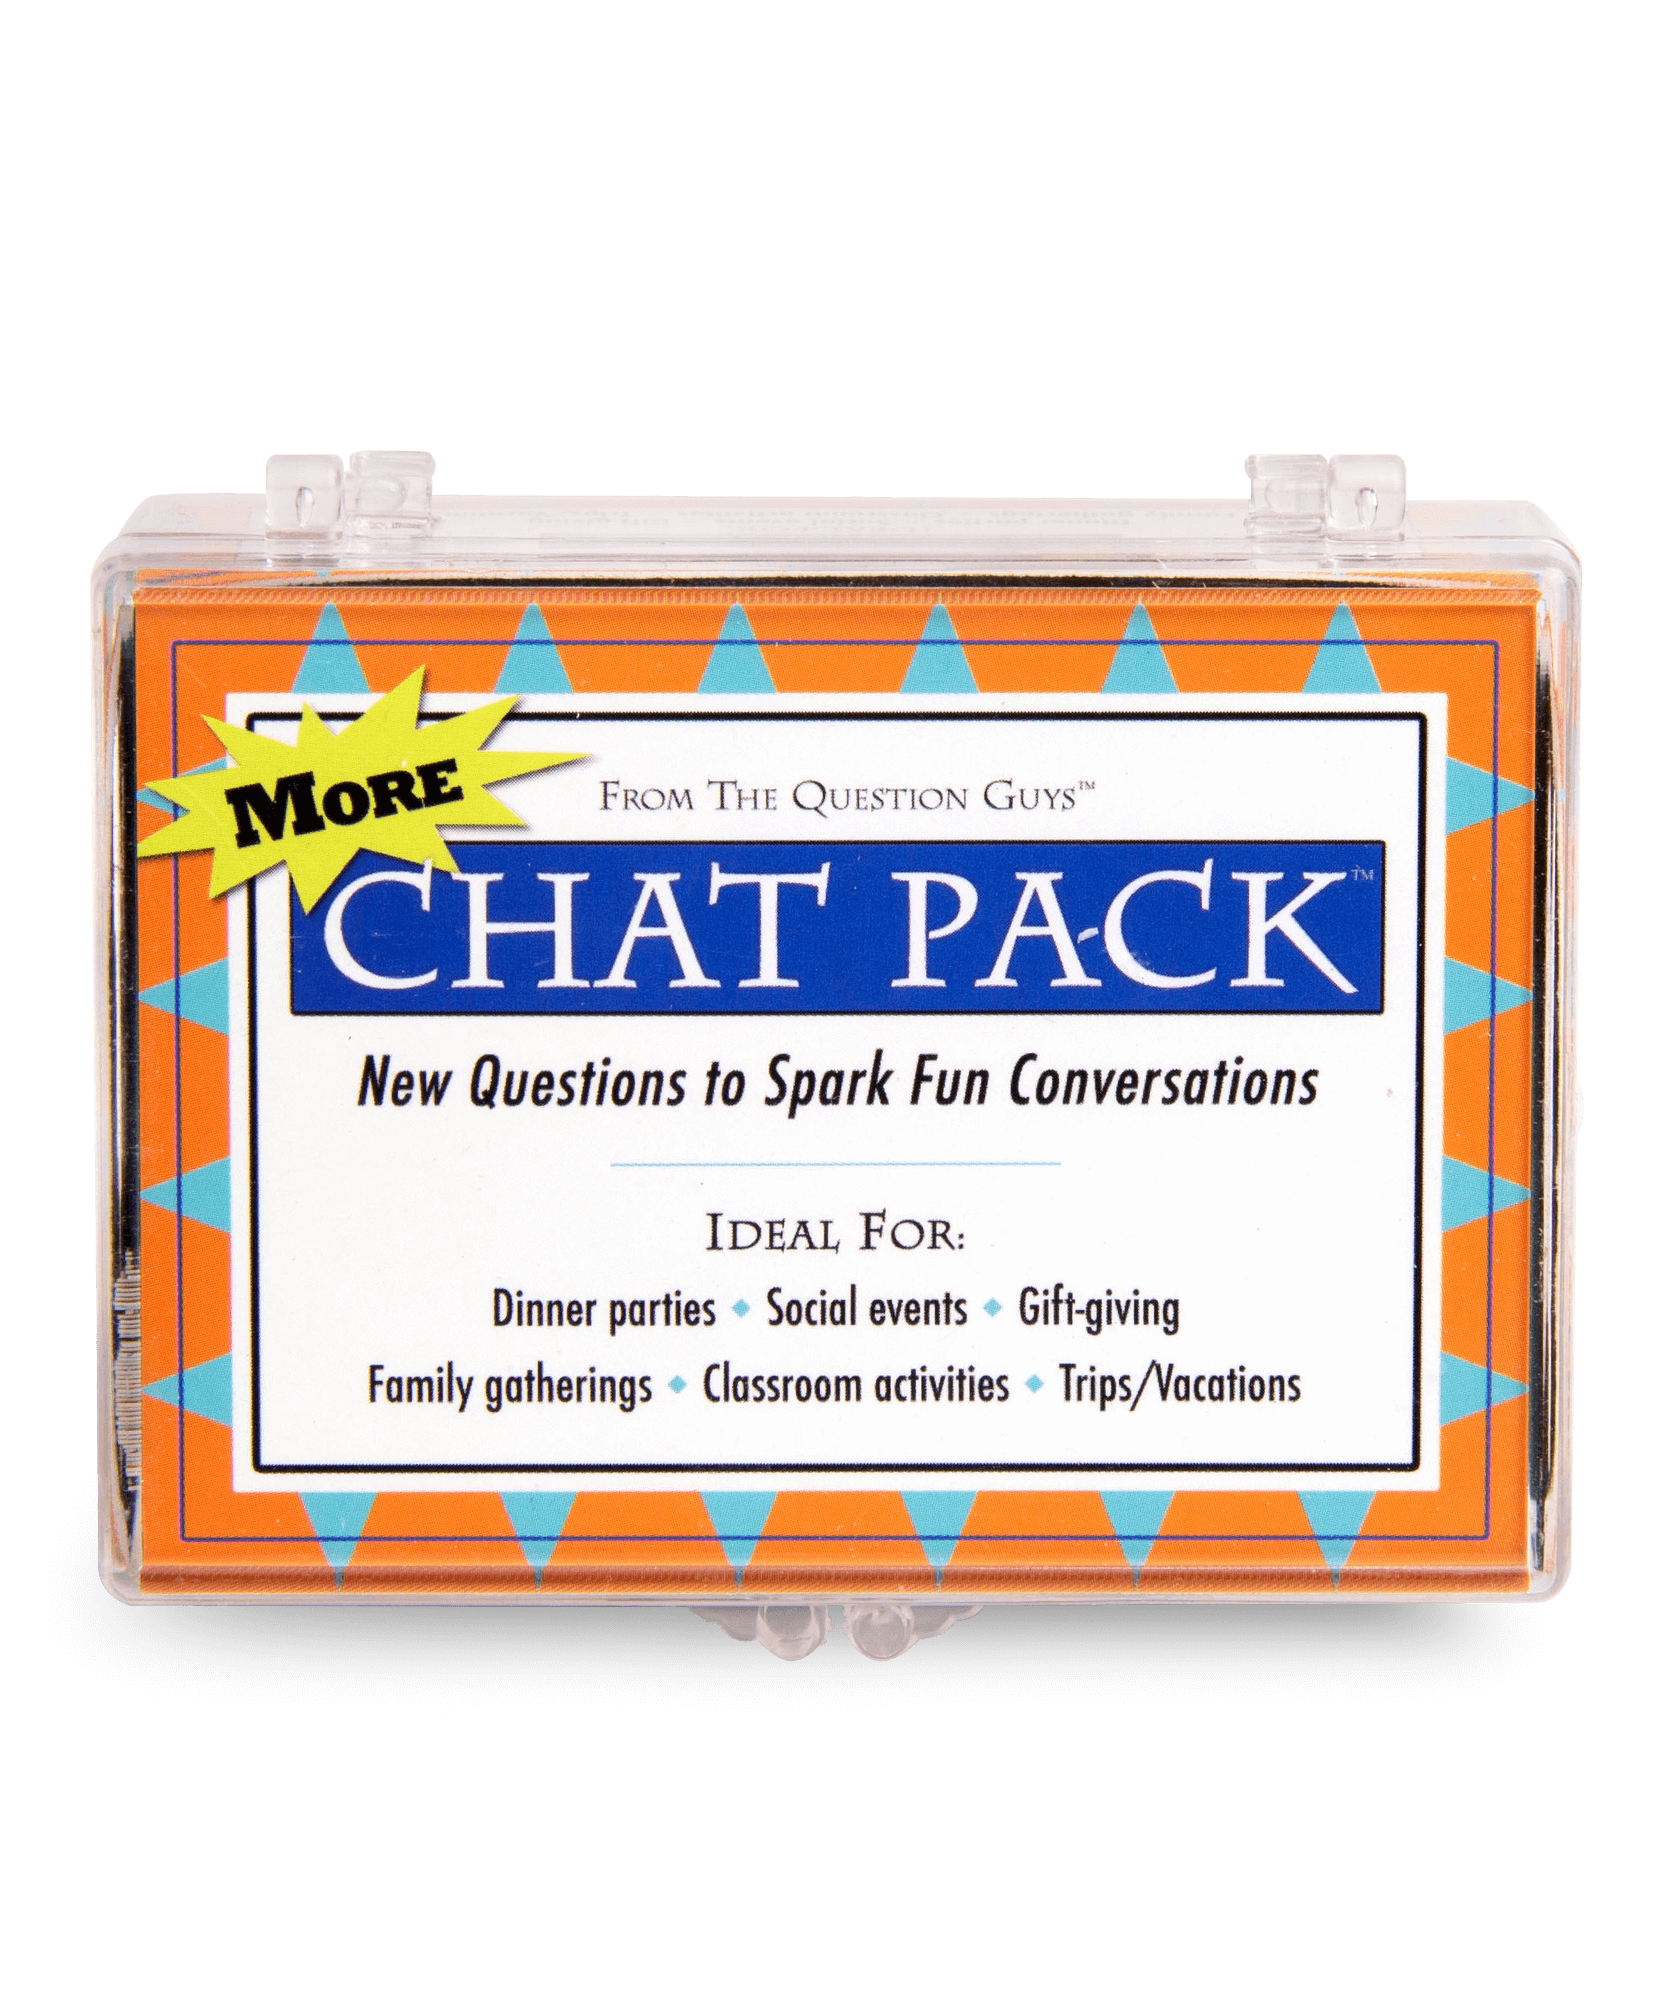 More Chat Pack - cards to spark conversation topics